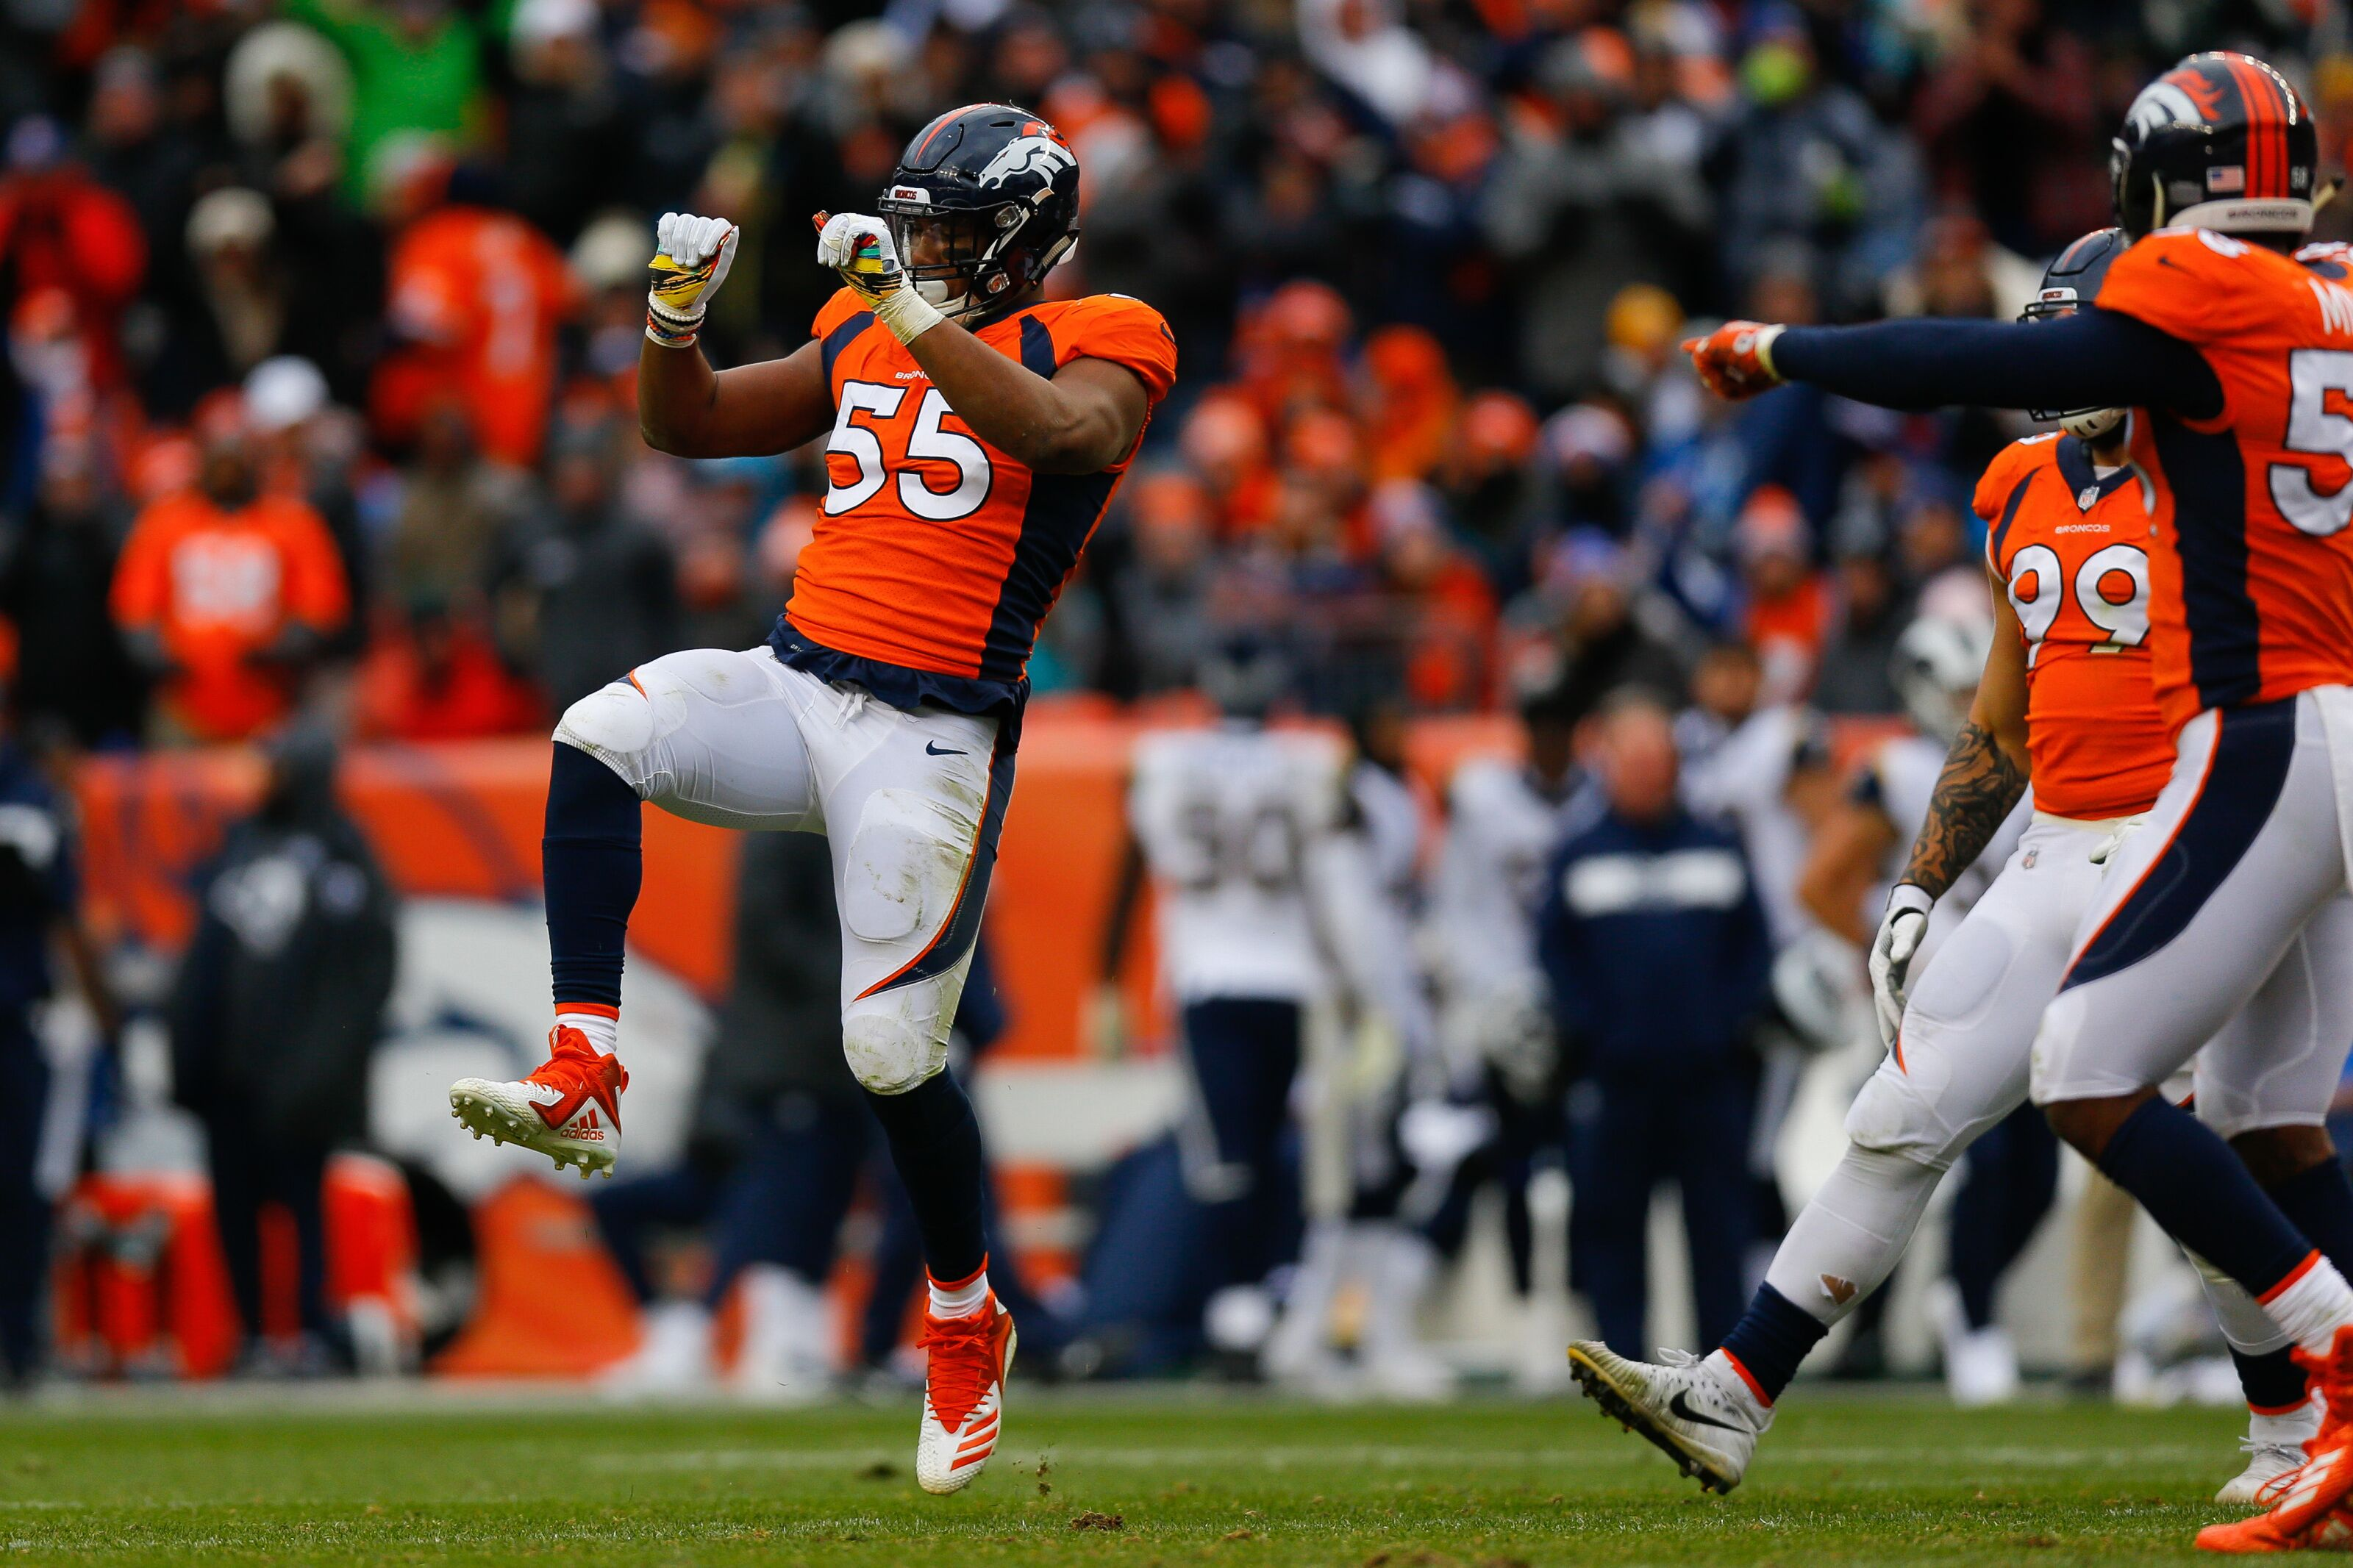 Denver Broncos: Bradley Chubb hunts Jared Goff in breakout game